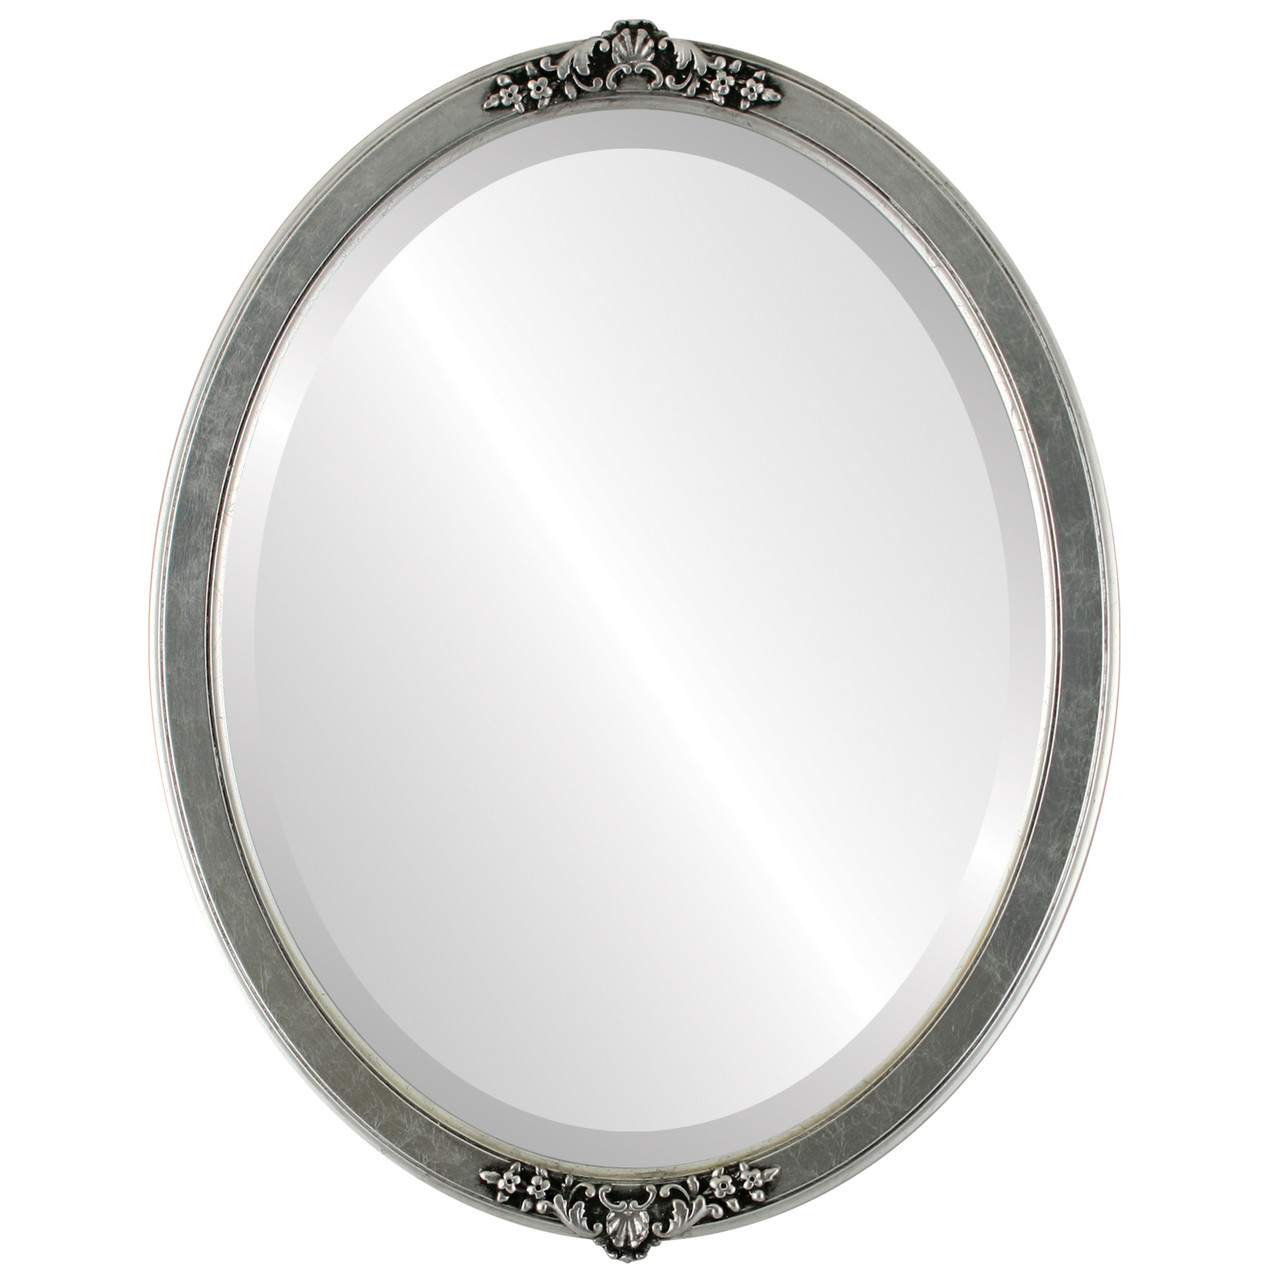 Antique Silver Oval Mirrors from $140 | Free Shipping